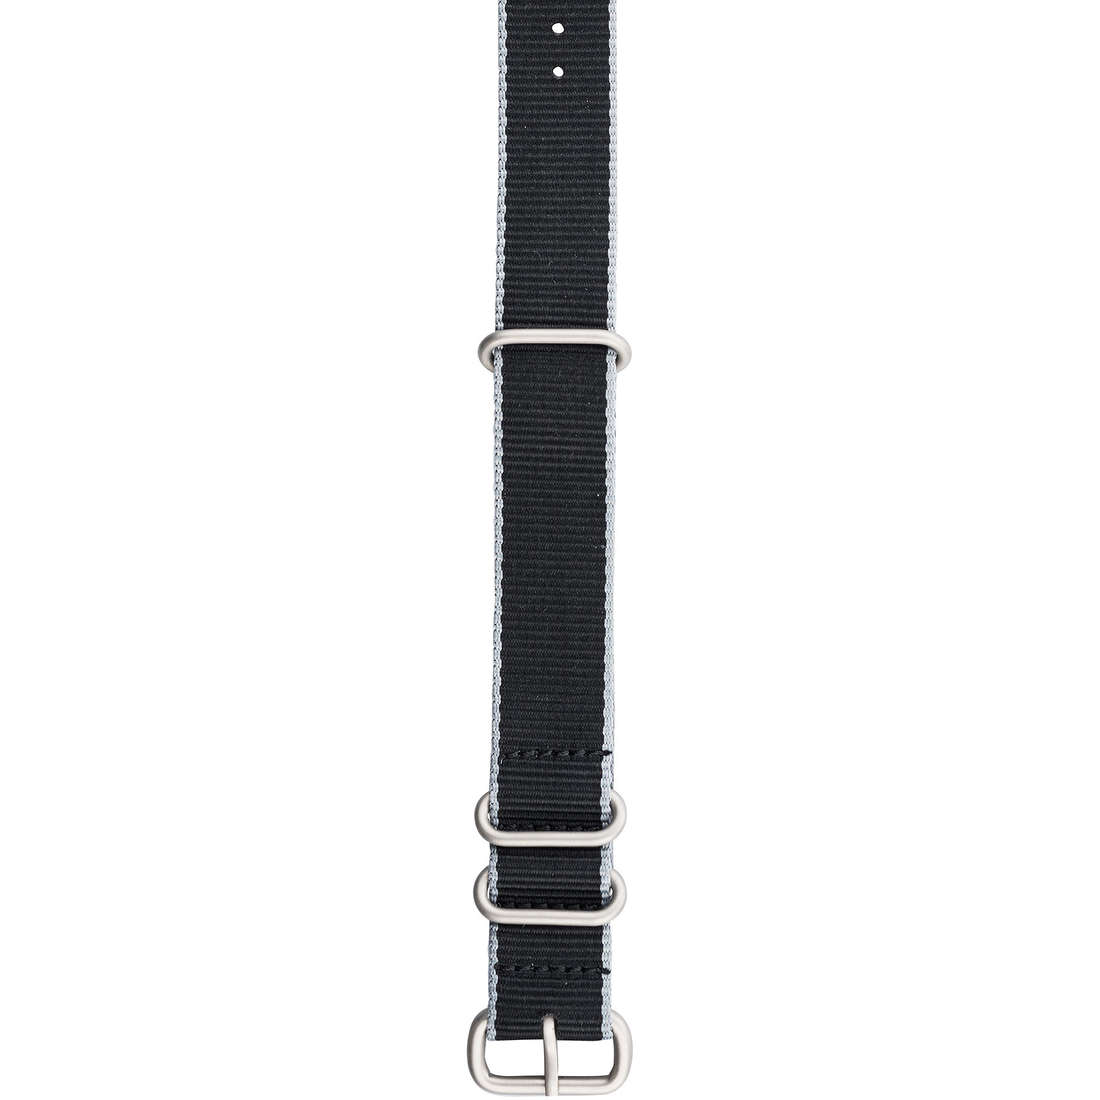 watch watch strap man Brosway W2 WW2c29